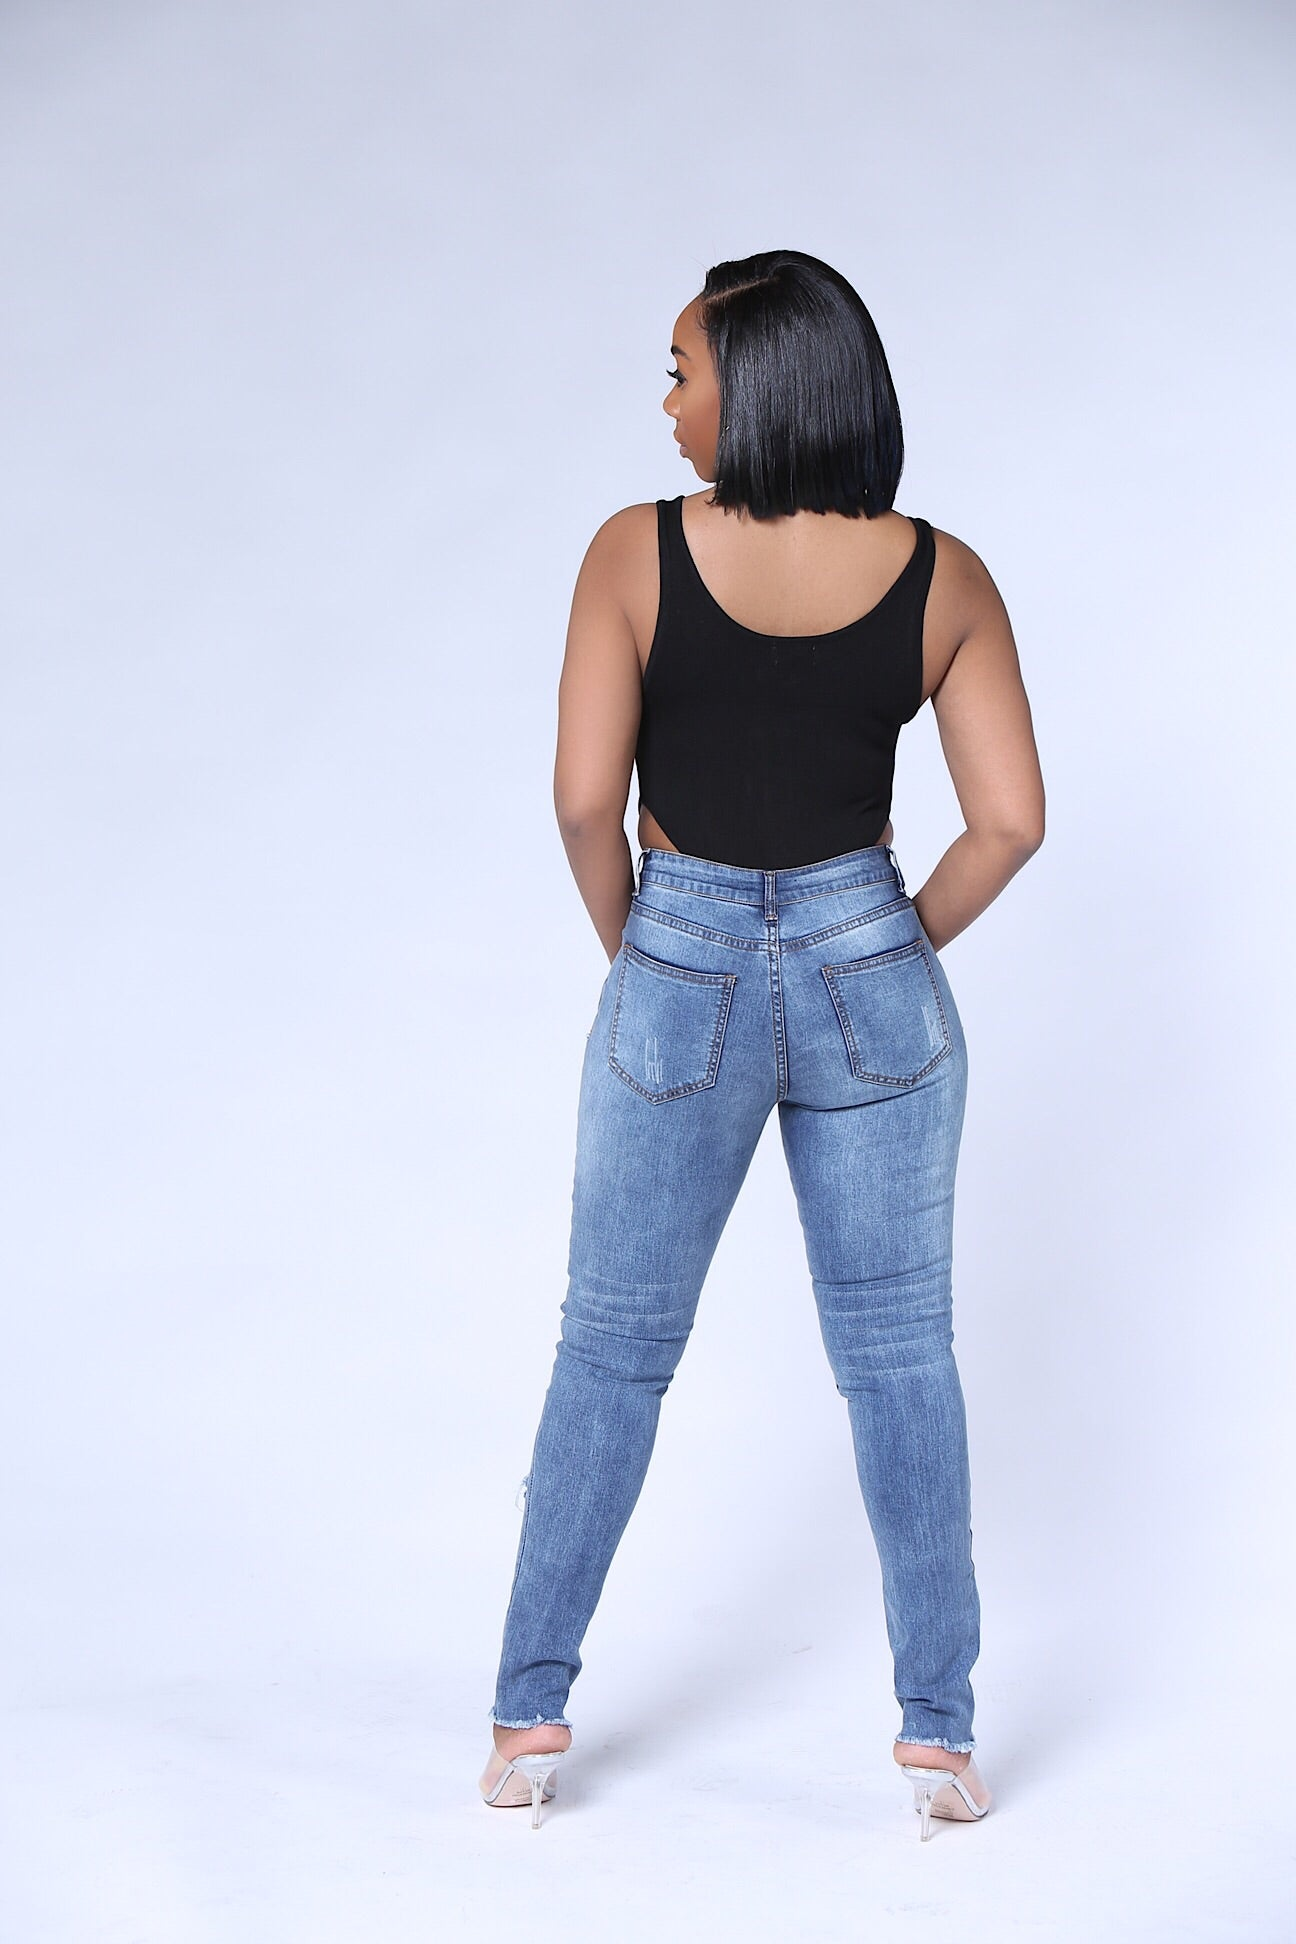 BAD GAL JEANS - IntrigueFashions